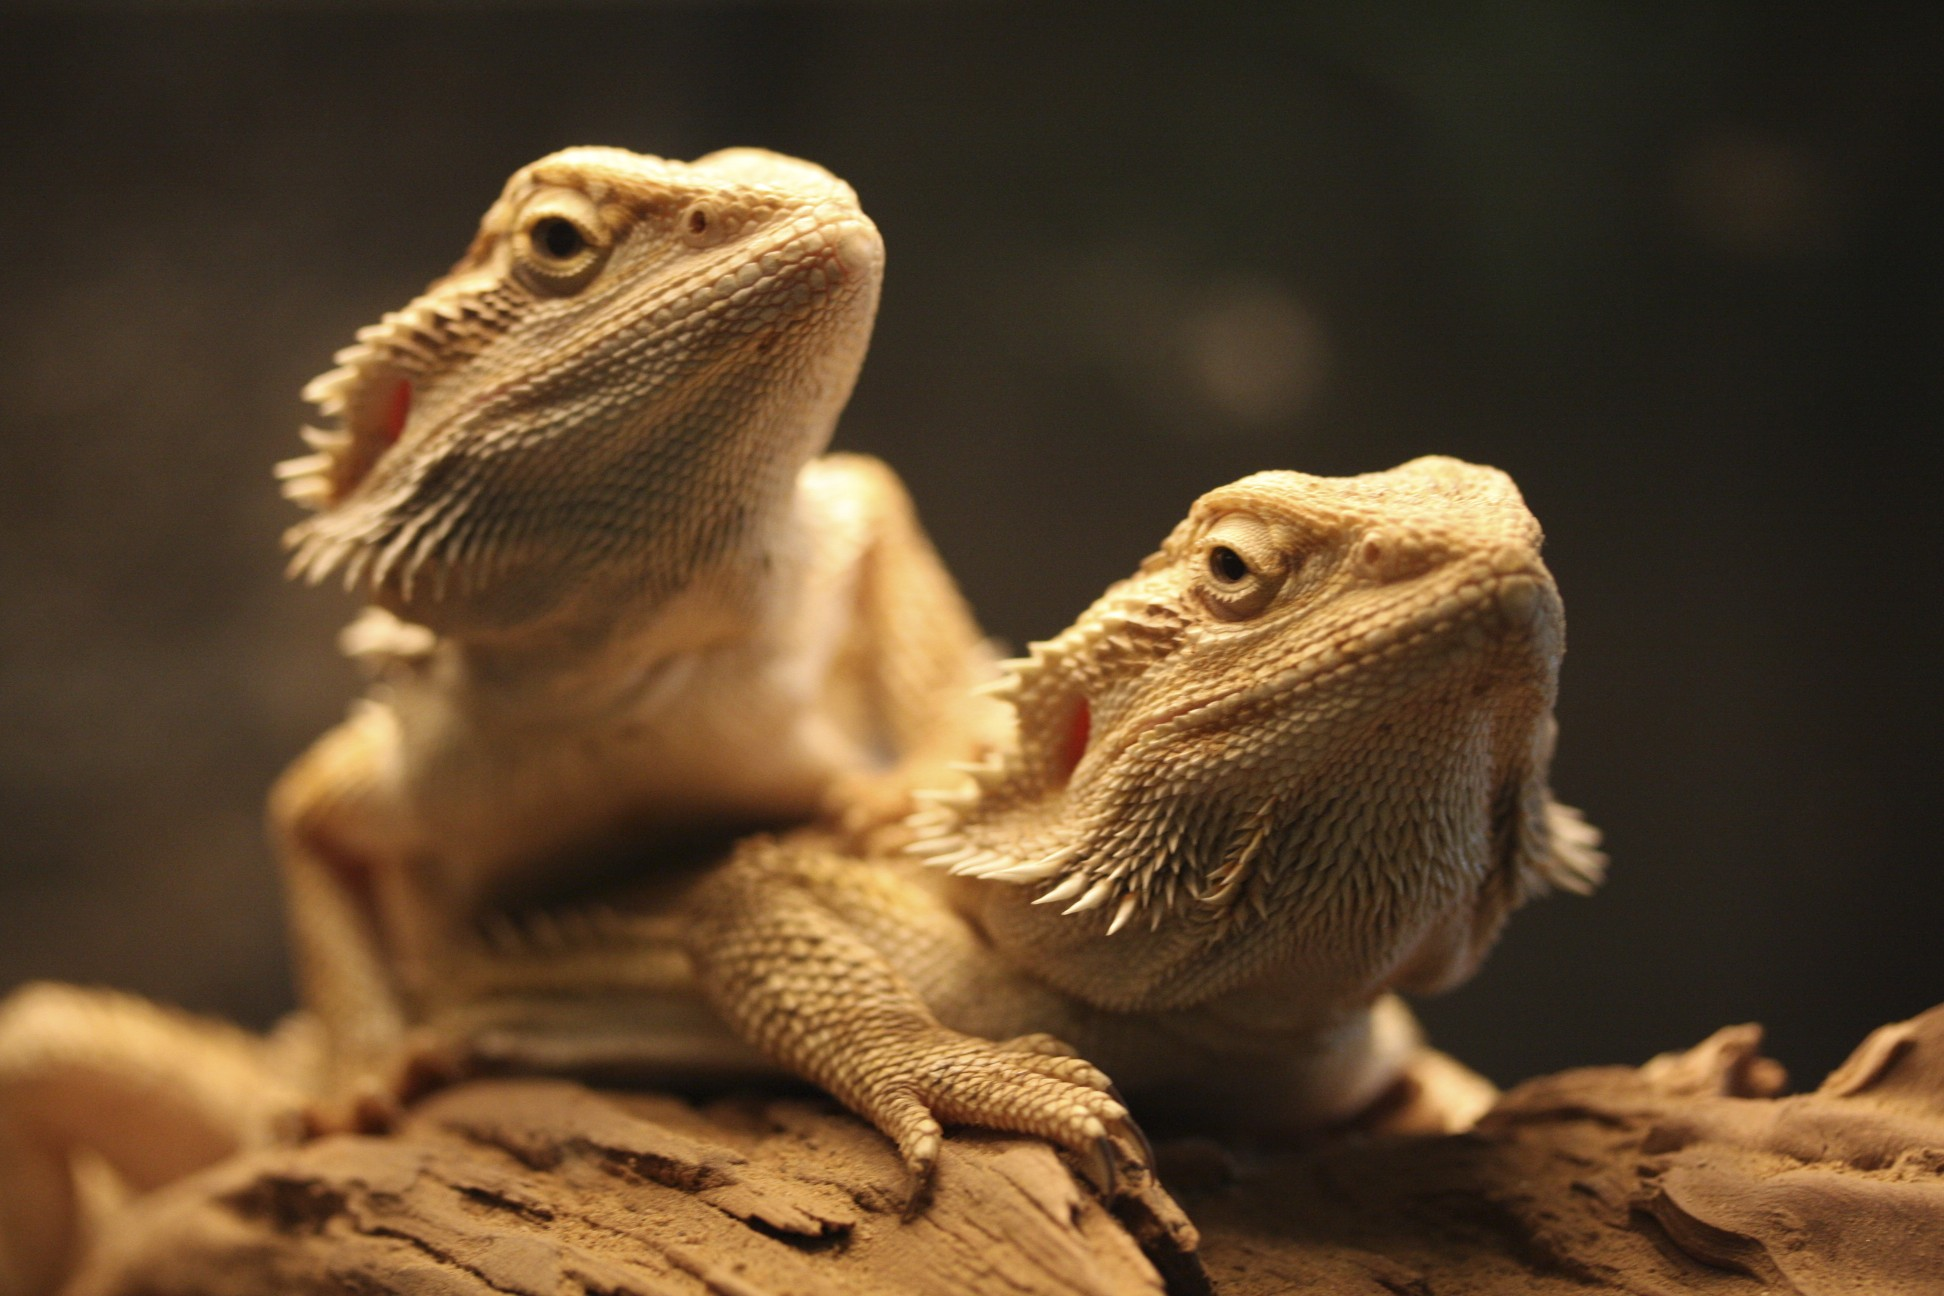 Bearded dragons in Australia have been shown to change sex in hotter environments.